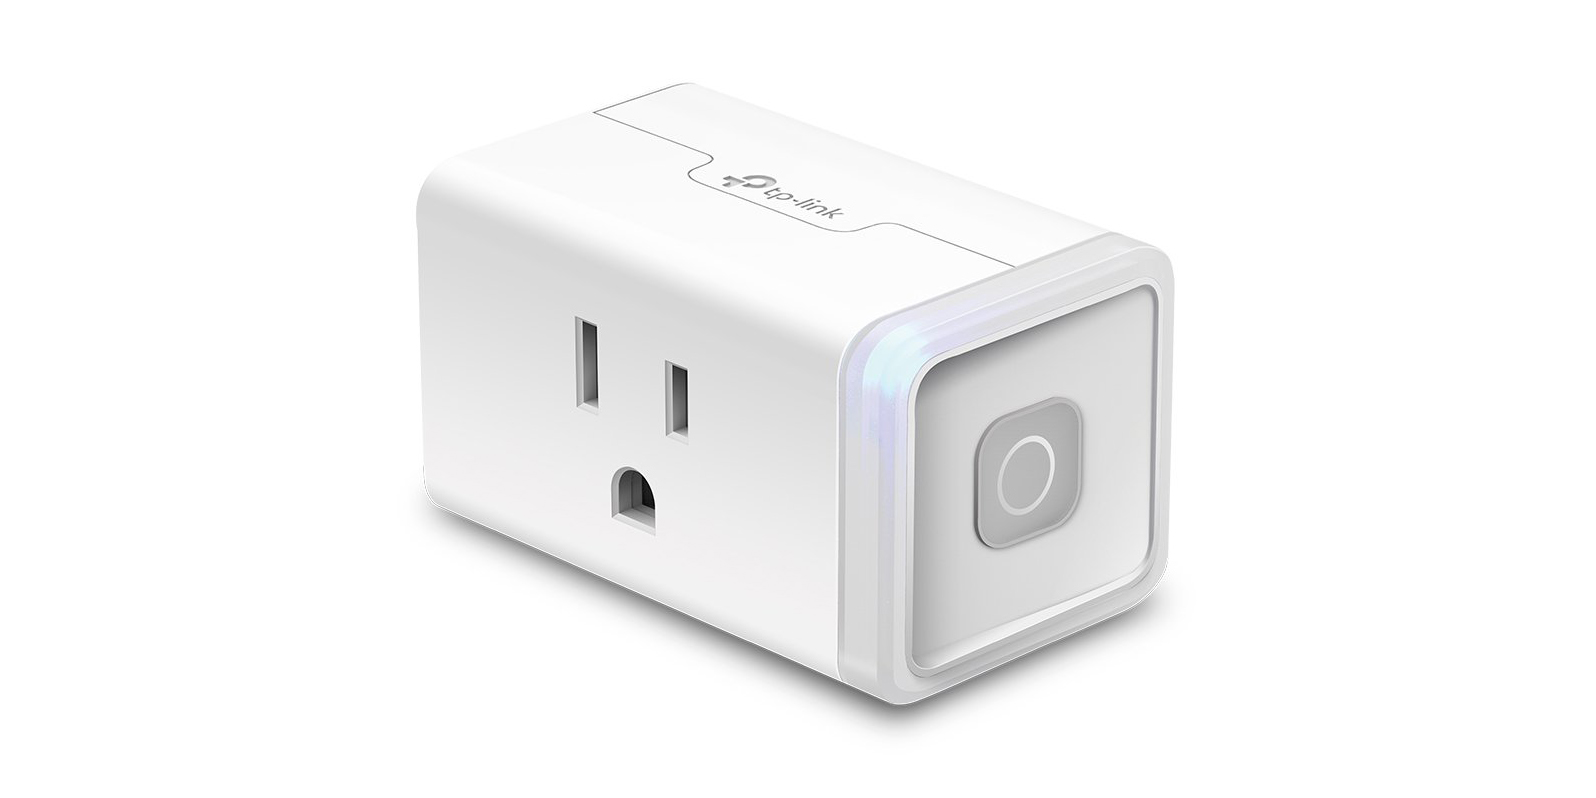 Expand your smart home on a budget with these $13 TP-Link Smart Plugs